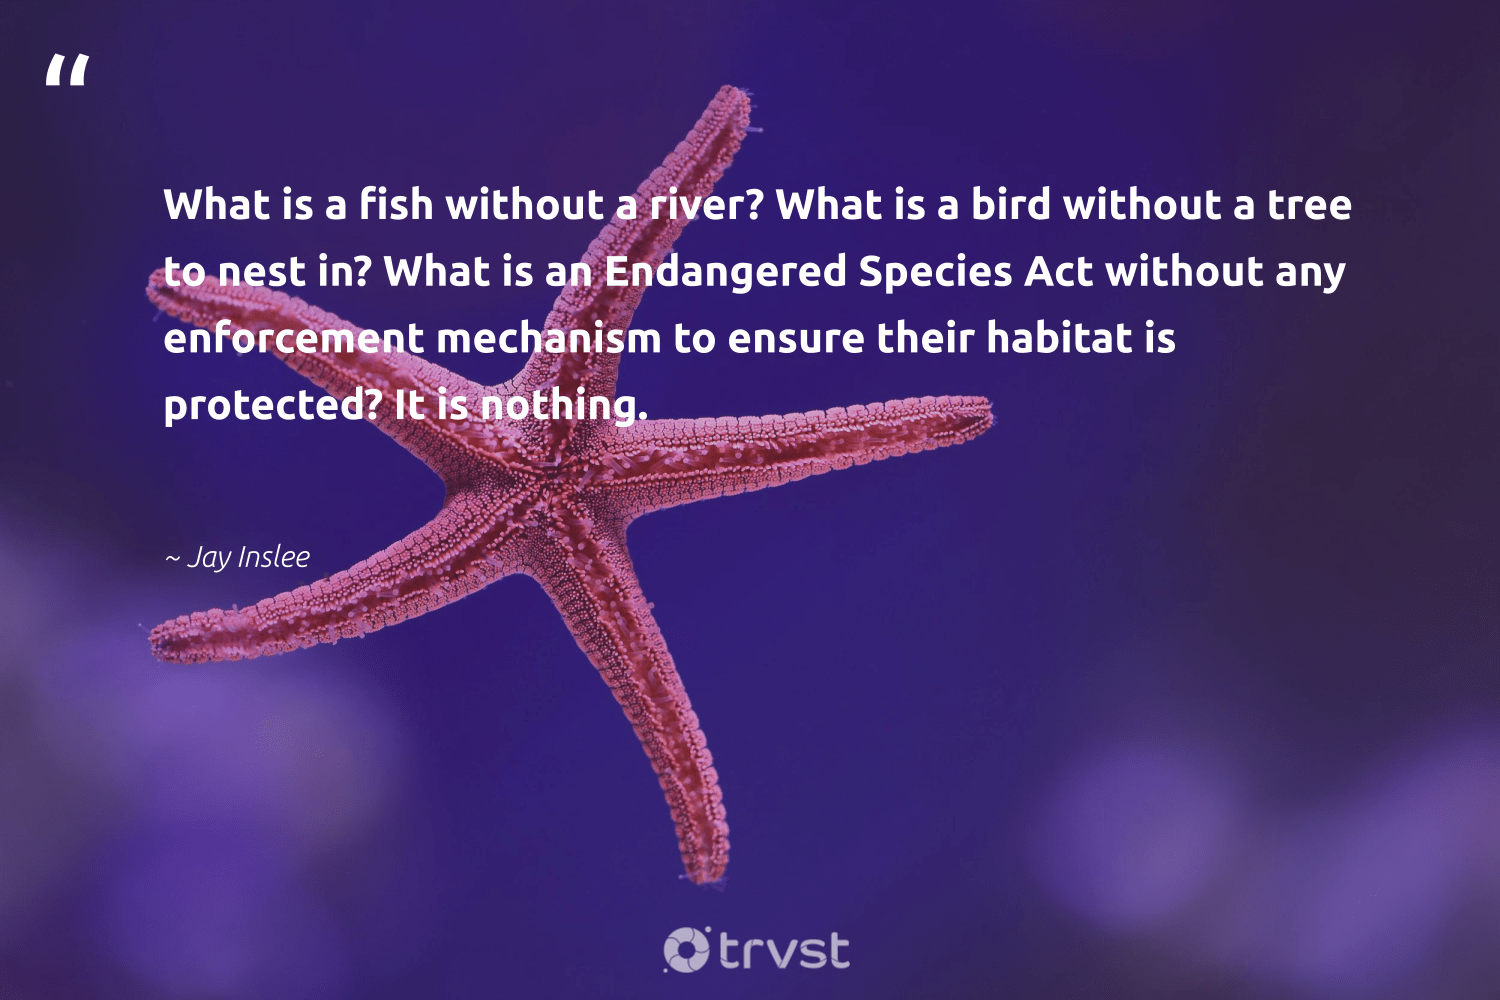 """""""What is a fish without a river? What is a bird without a tree to nest in? What is an Endangered Species Act without any enforcement mechanism to ensure their habitat is protected? It is nothing.""""  - Jay Inslee #trvst #quotes #river #fish #bird #endangeredspecies #endangered #rarespecies #ocean #healthyocean #geology #dosomething"""